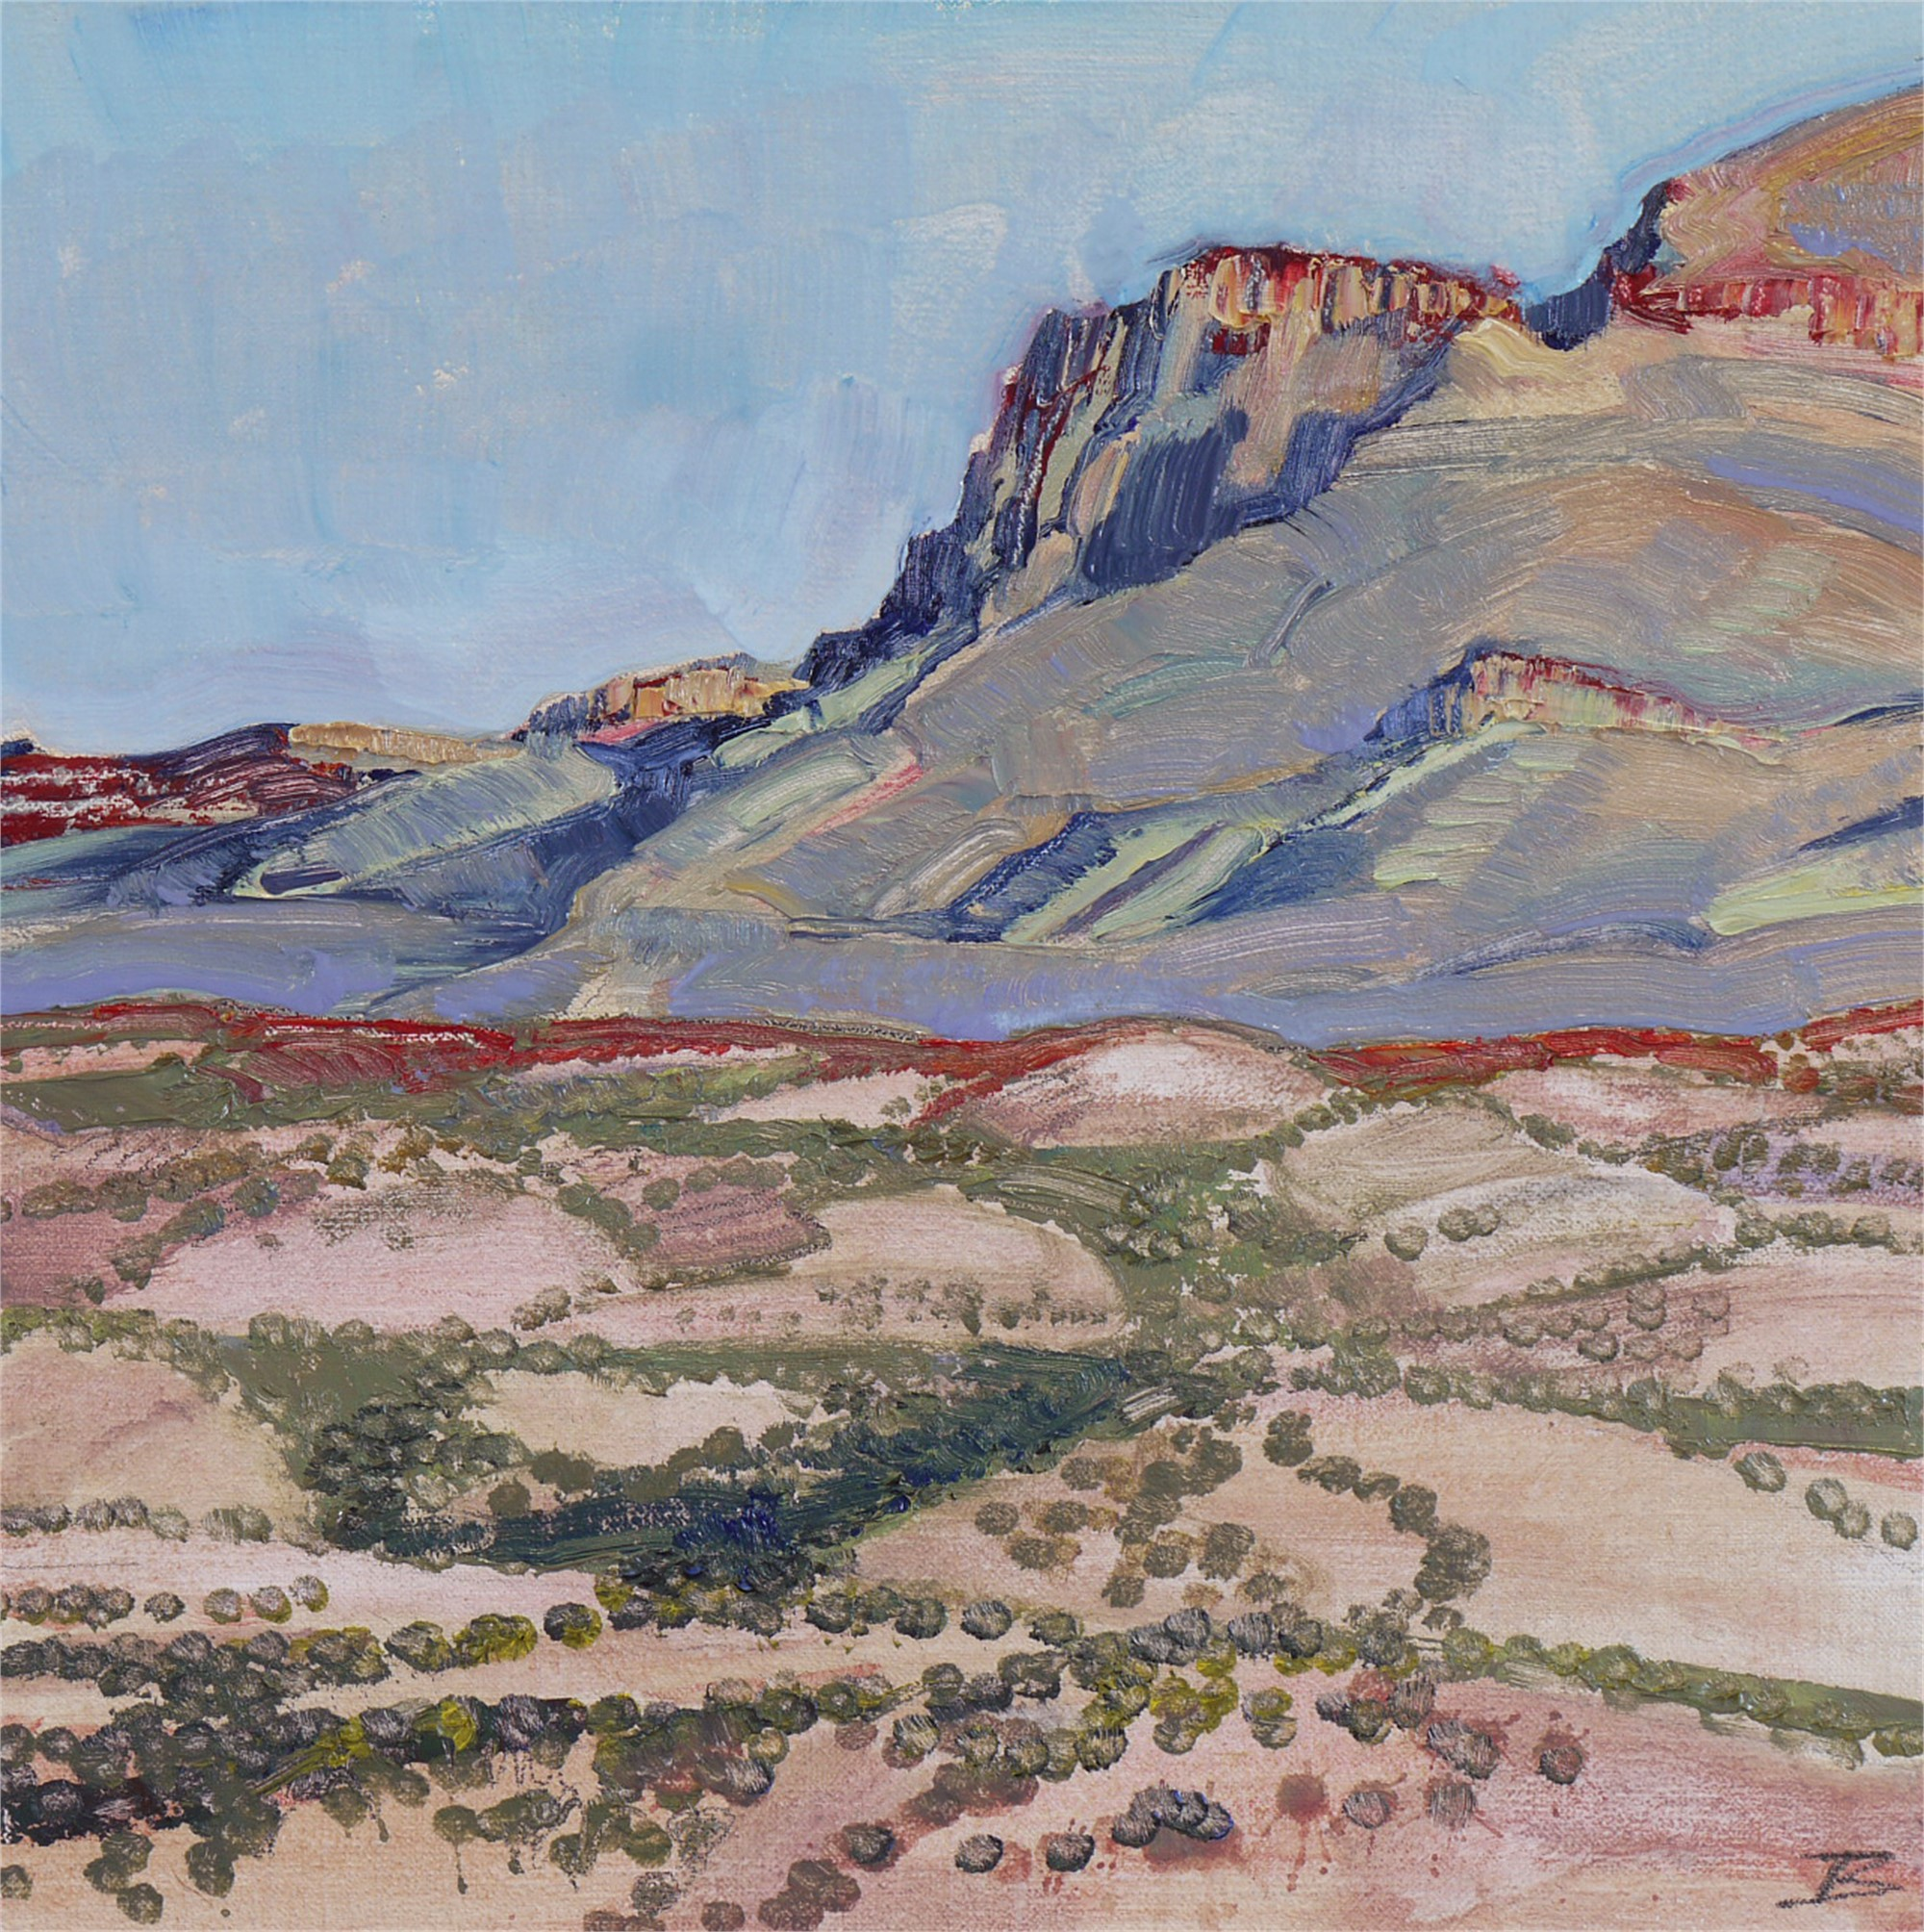 Study for Desert Mountain by Mary Baxter